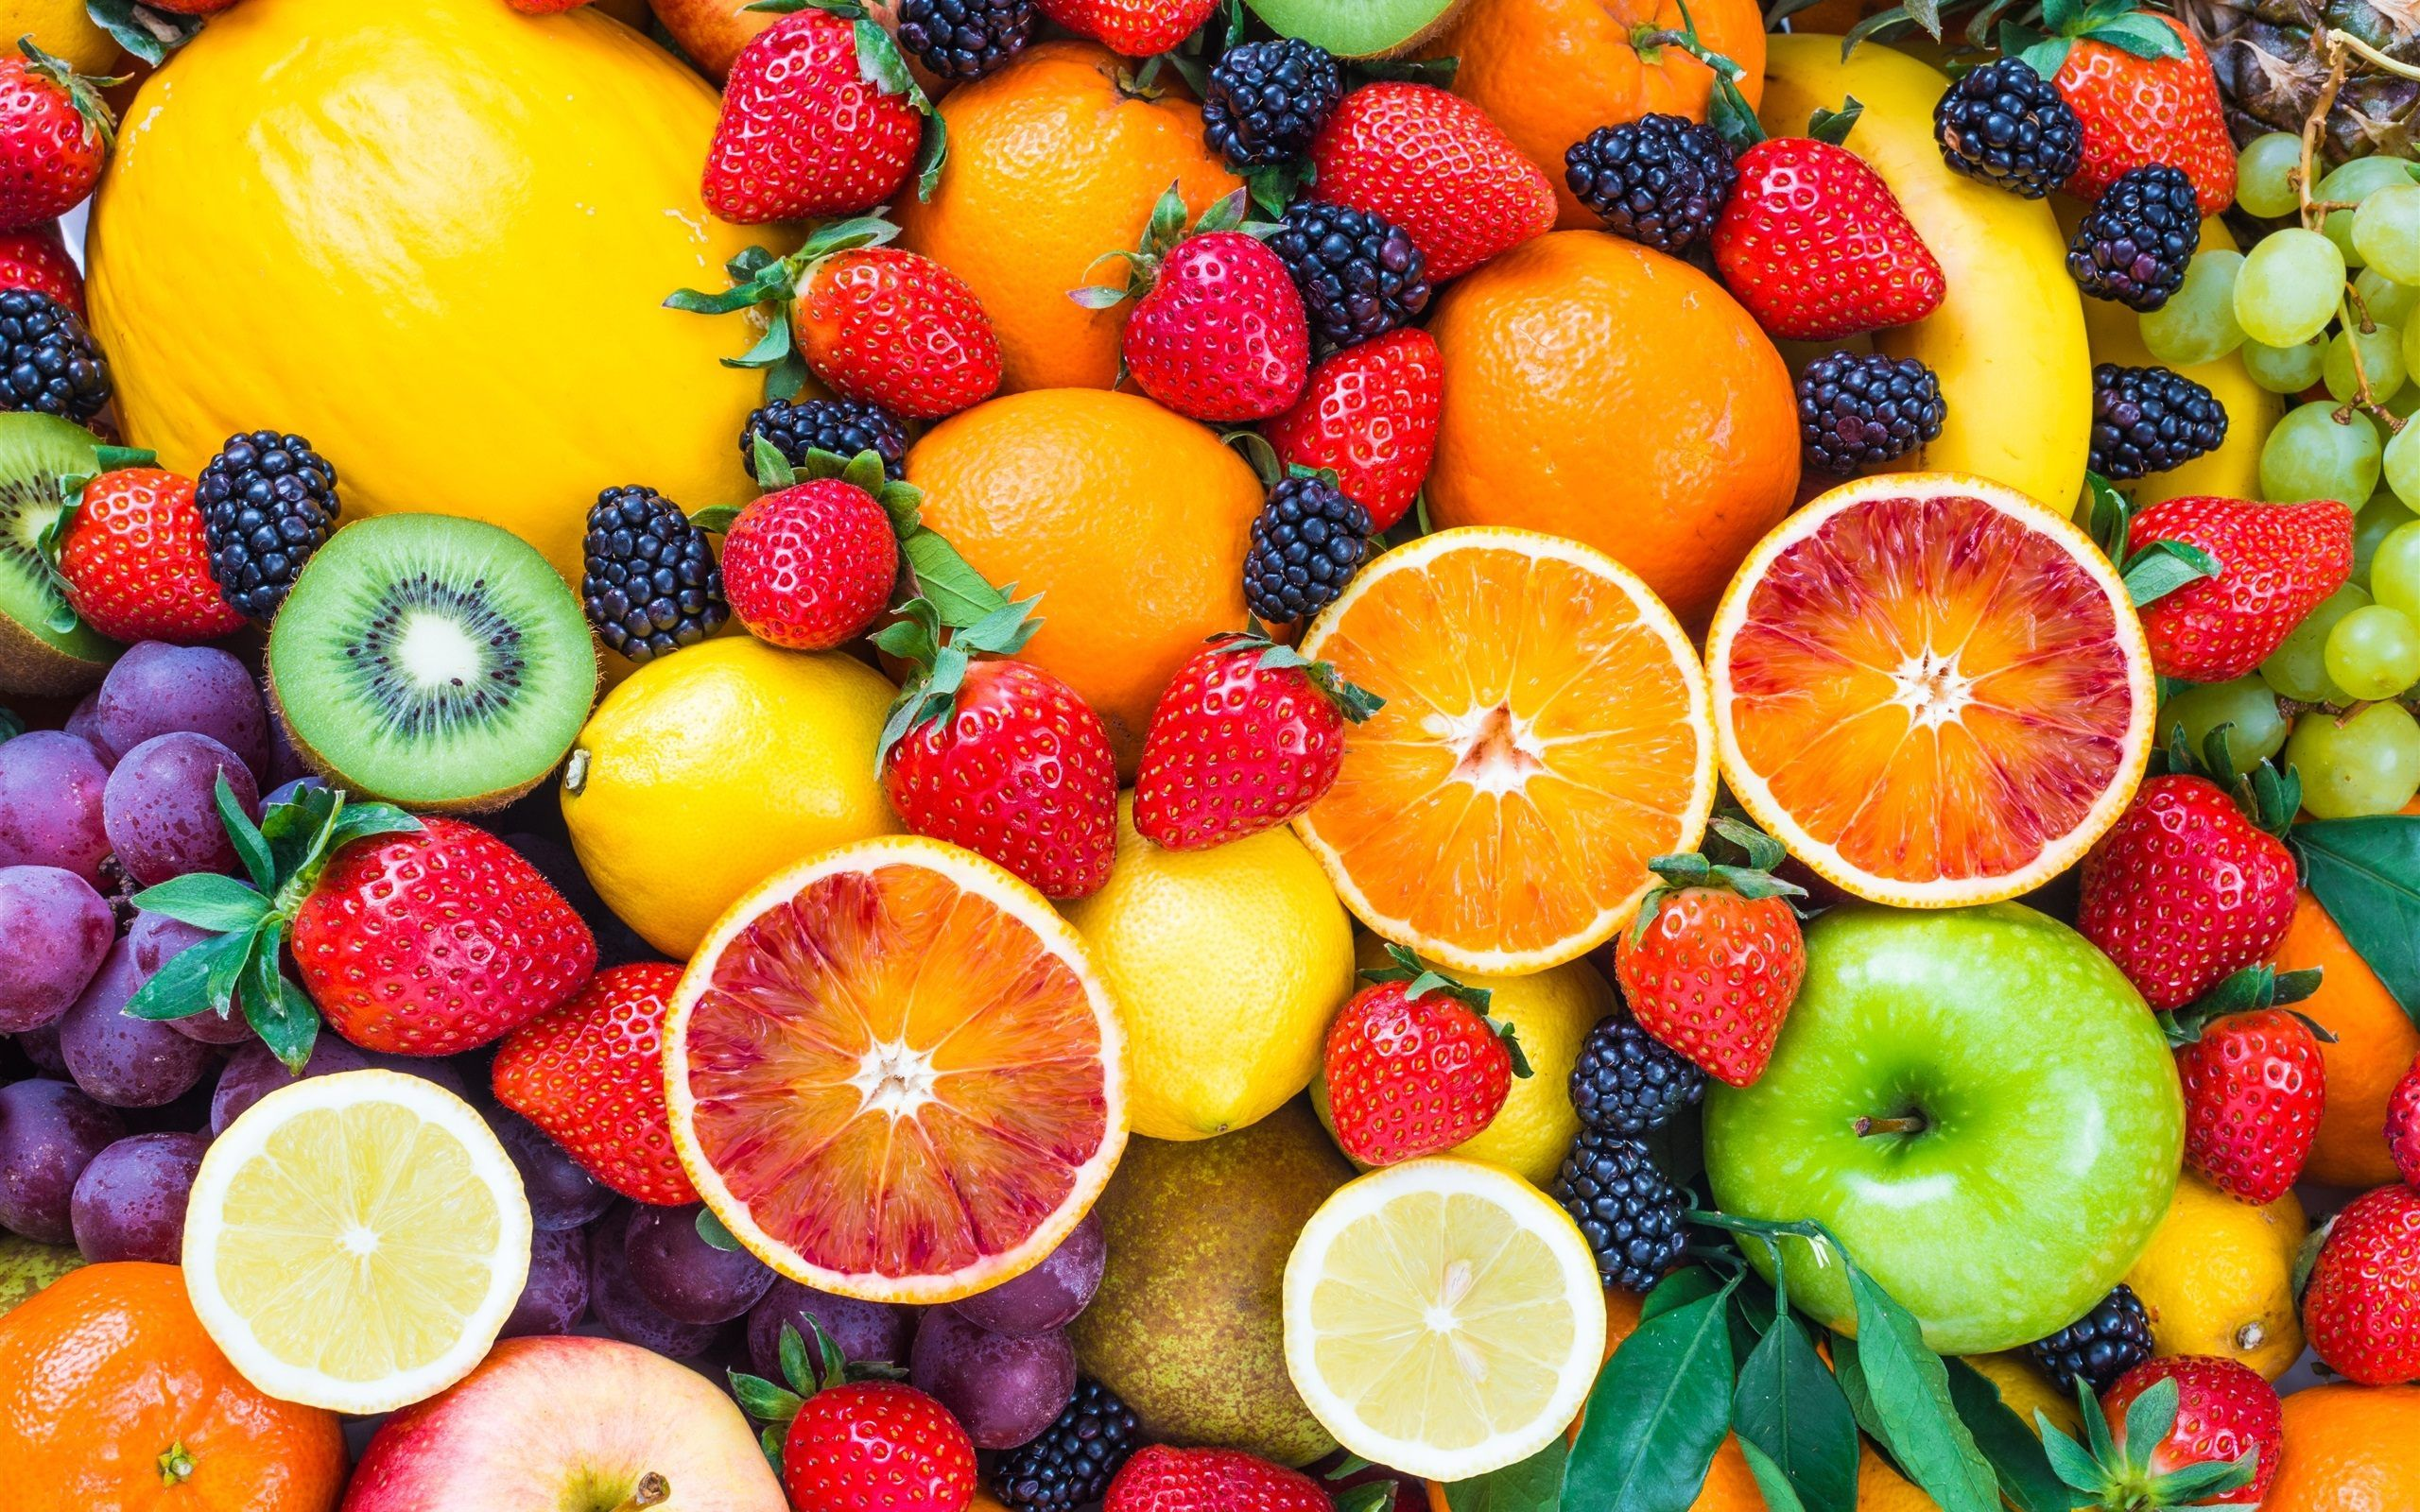 Awesome Fresh Fruit Wallpaper Food wallpaper, Fruit